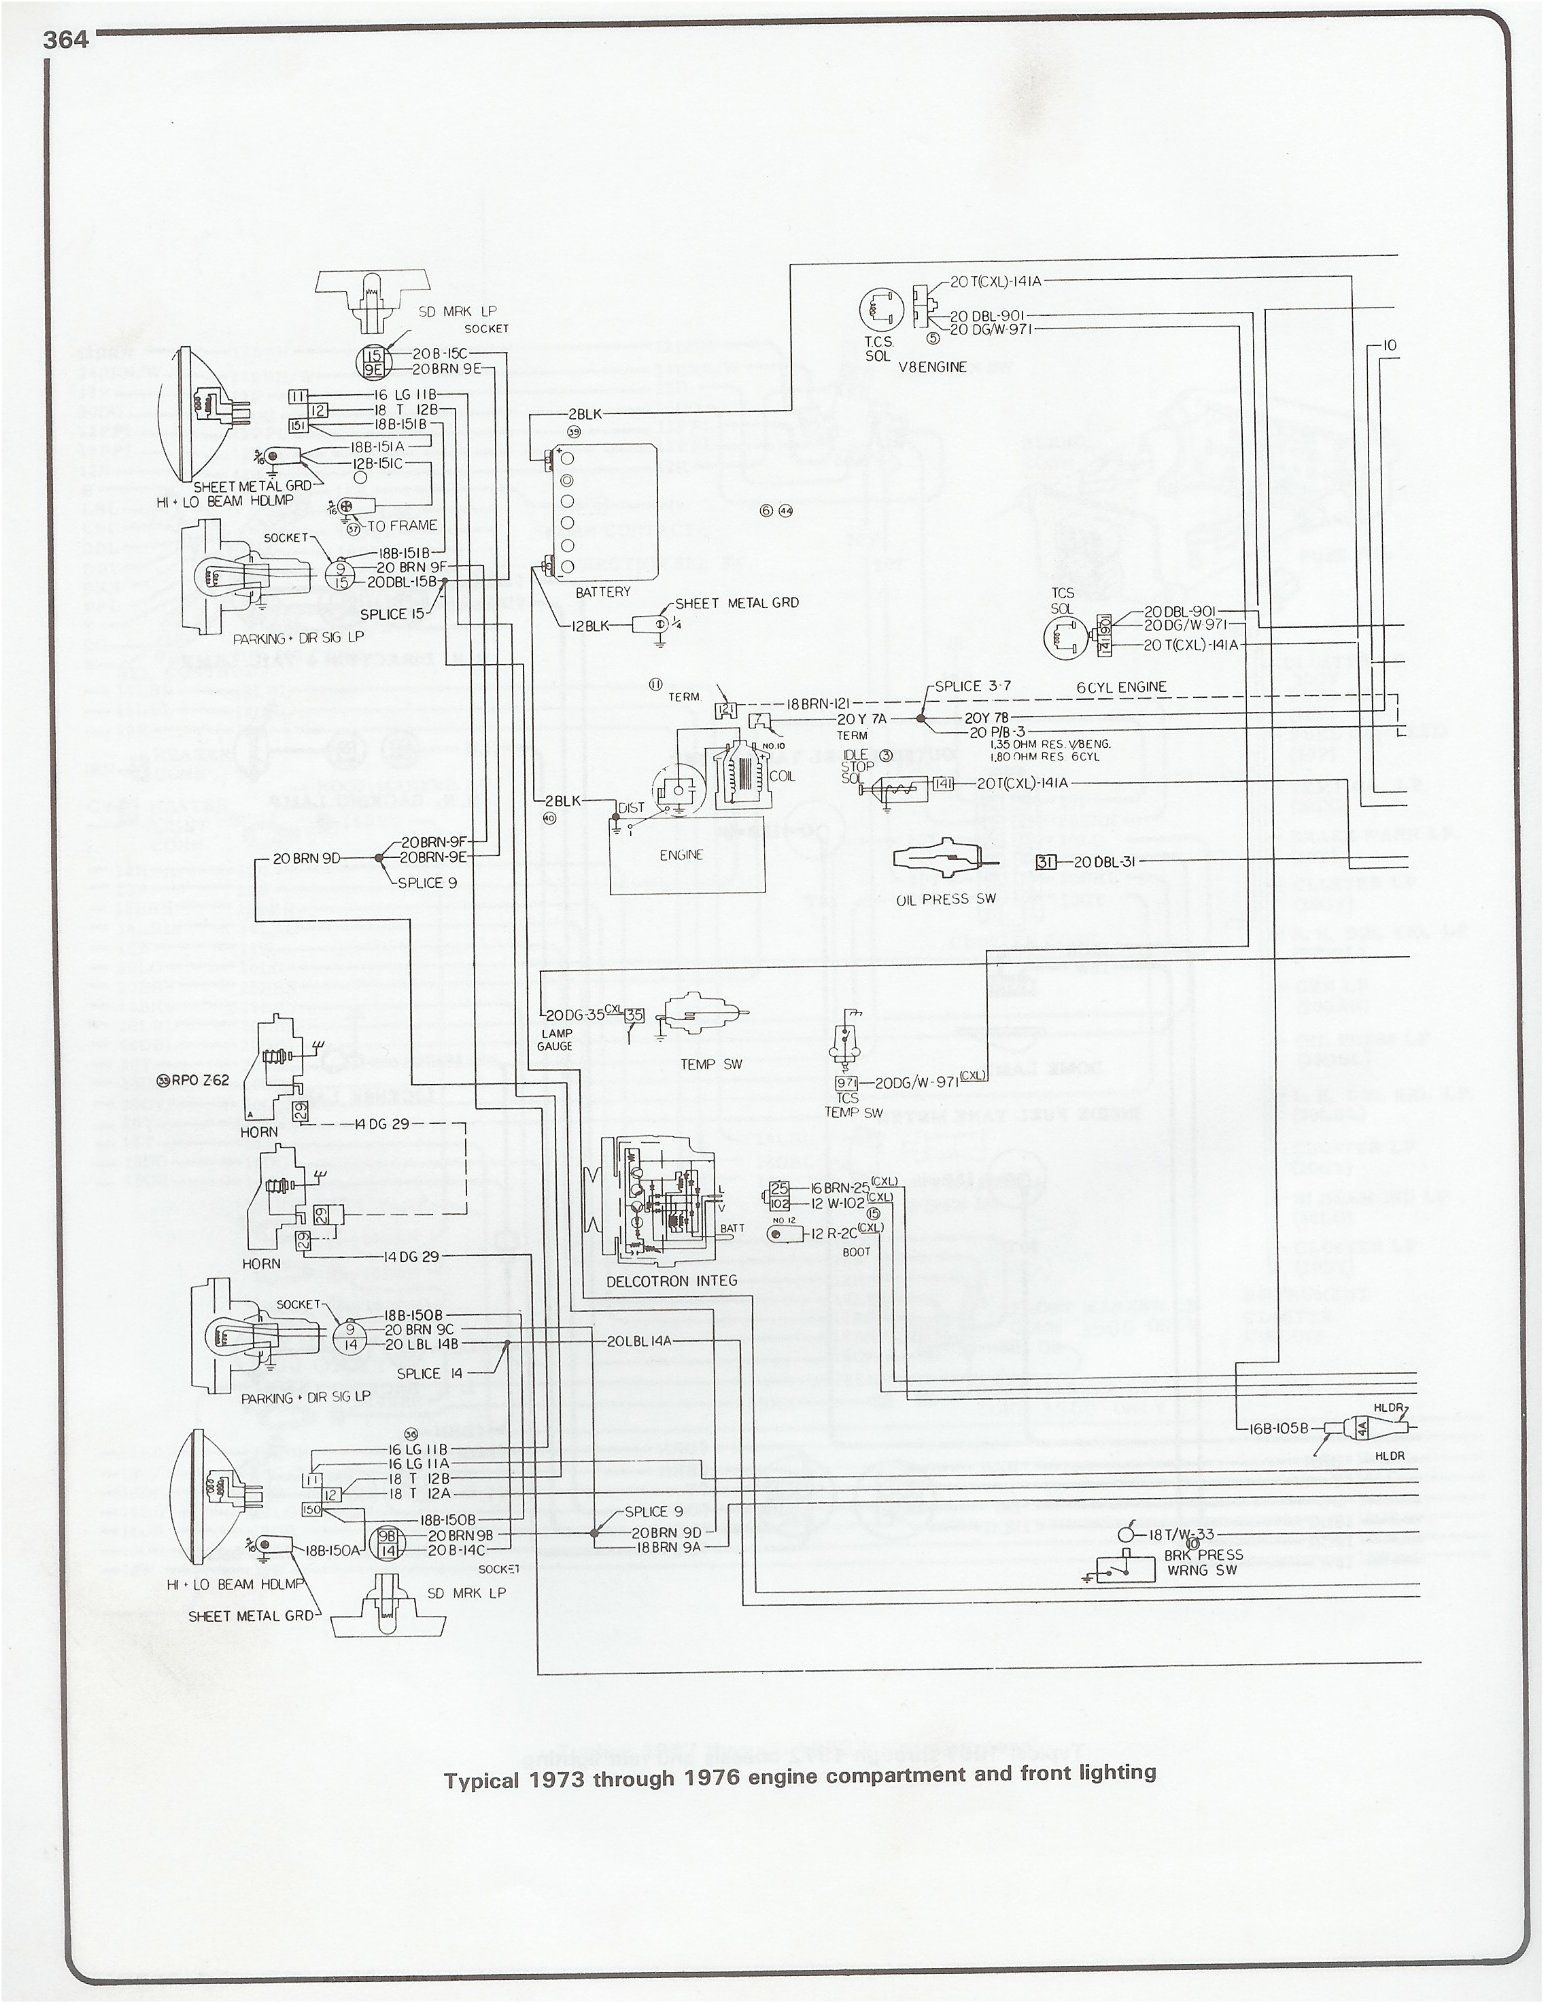 hight resolution of wiring diagram 1973 1976 chevy pickup chevy wiring diagram chevy truck gauge cluster wiring harness as well 1976 camaro wiring